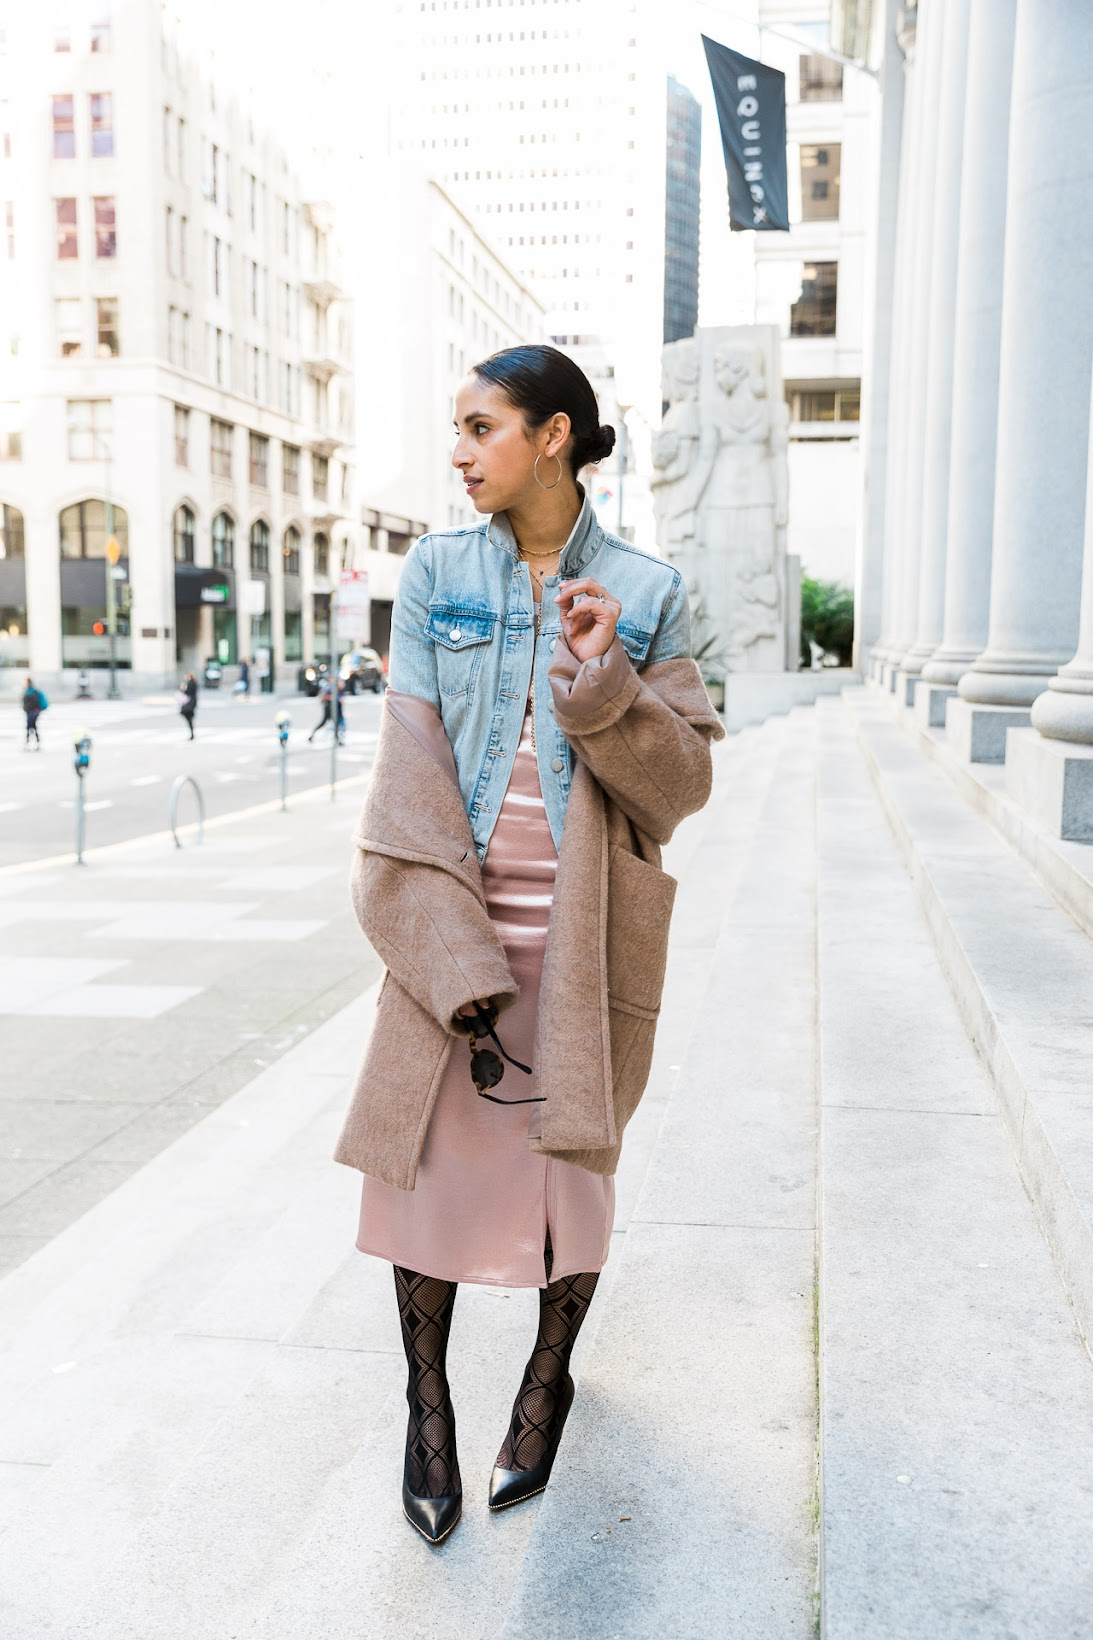 camel oversized coat, oversized camel coat, hm camel coat, pink satin dress, Charlotte Russe satin dress, light wash denim, slick back bun, spring style, how to style a slip dress